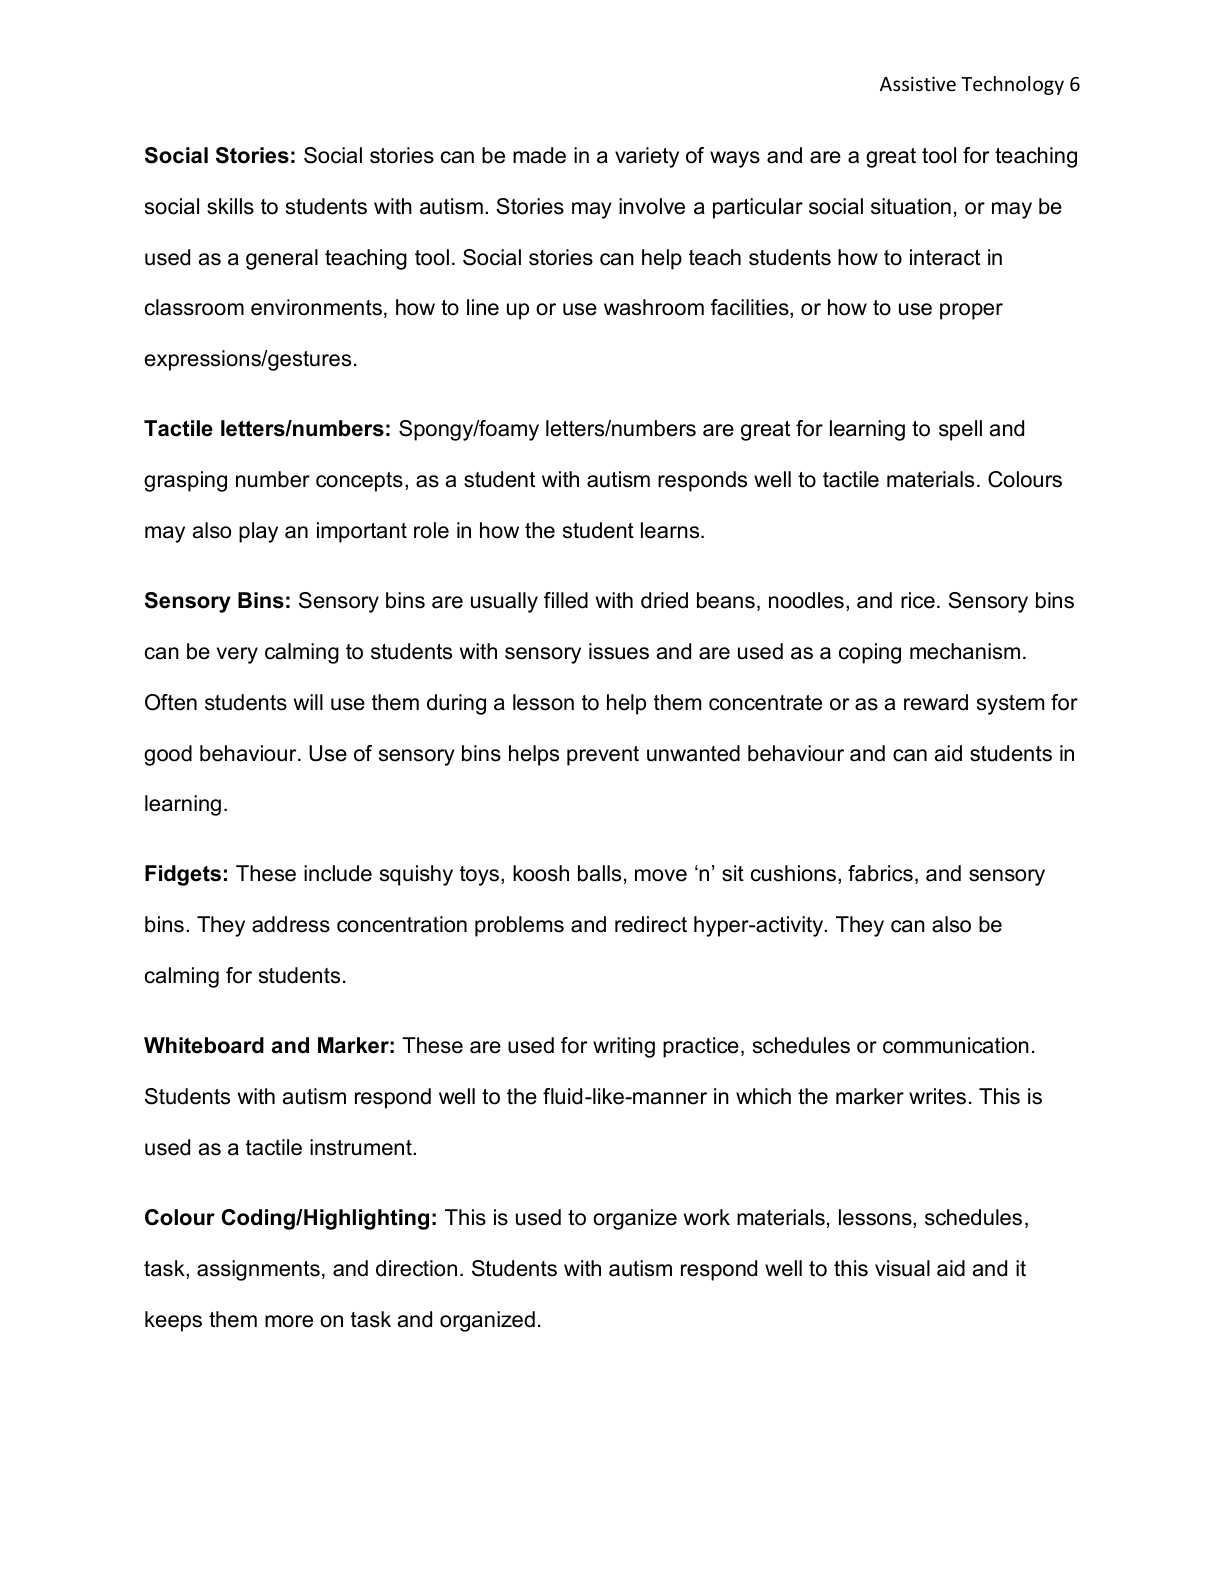 009 Argumentative Essay Pdf Assistive Technology For Students Who Have Autism6 Unique Outline Sample Download High School Full